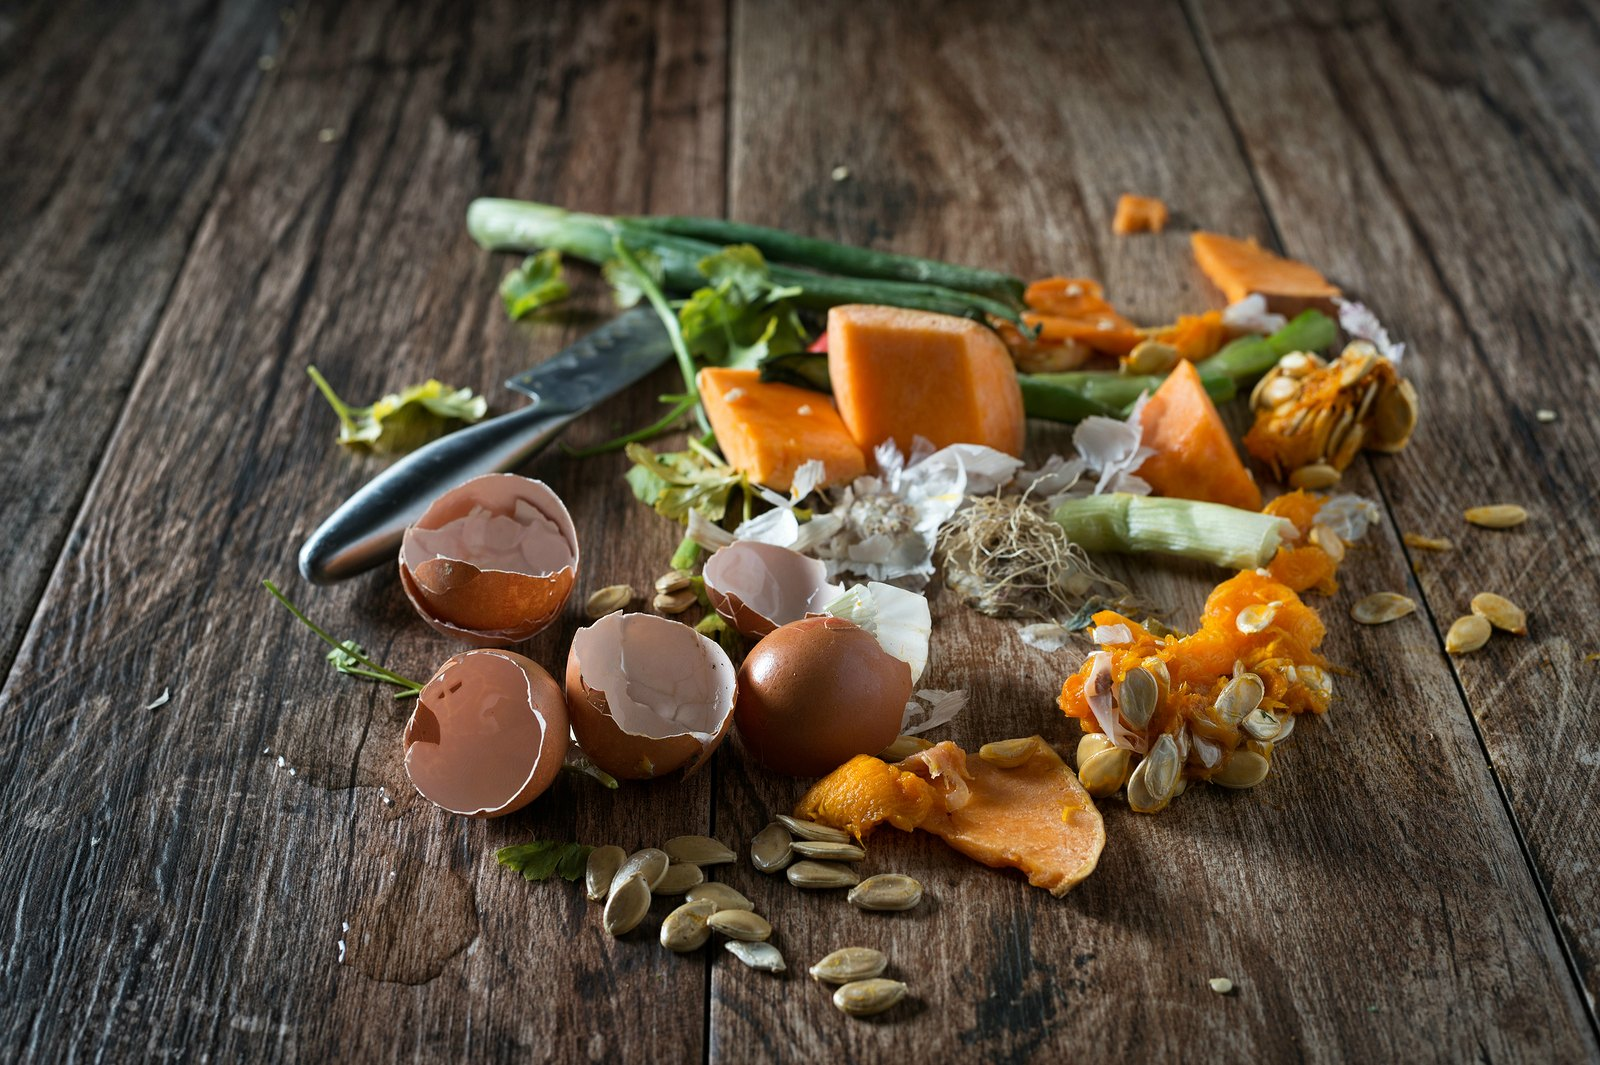 Be both financially and environmentally friendly - reduce your food waste with these simple ideas